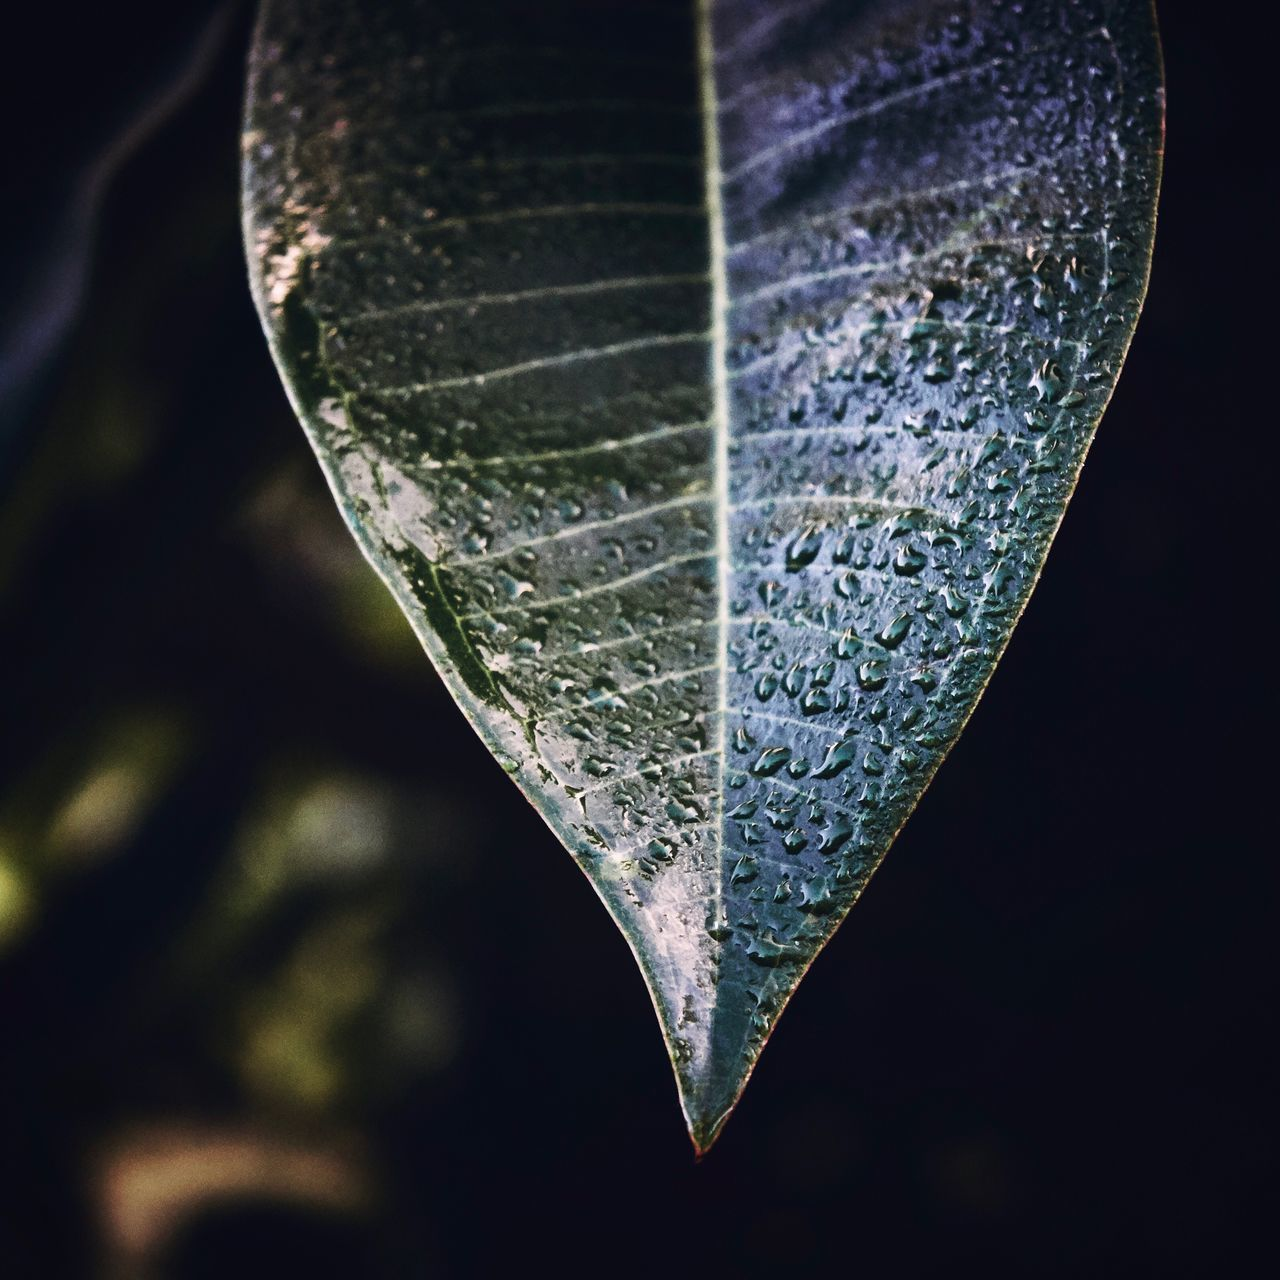 Close-up No People Black Background Day Outdoors Fragility Nature Leaf